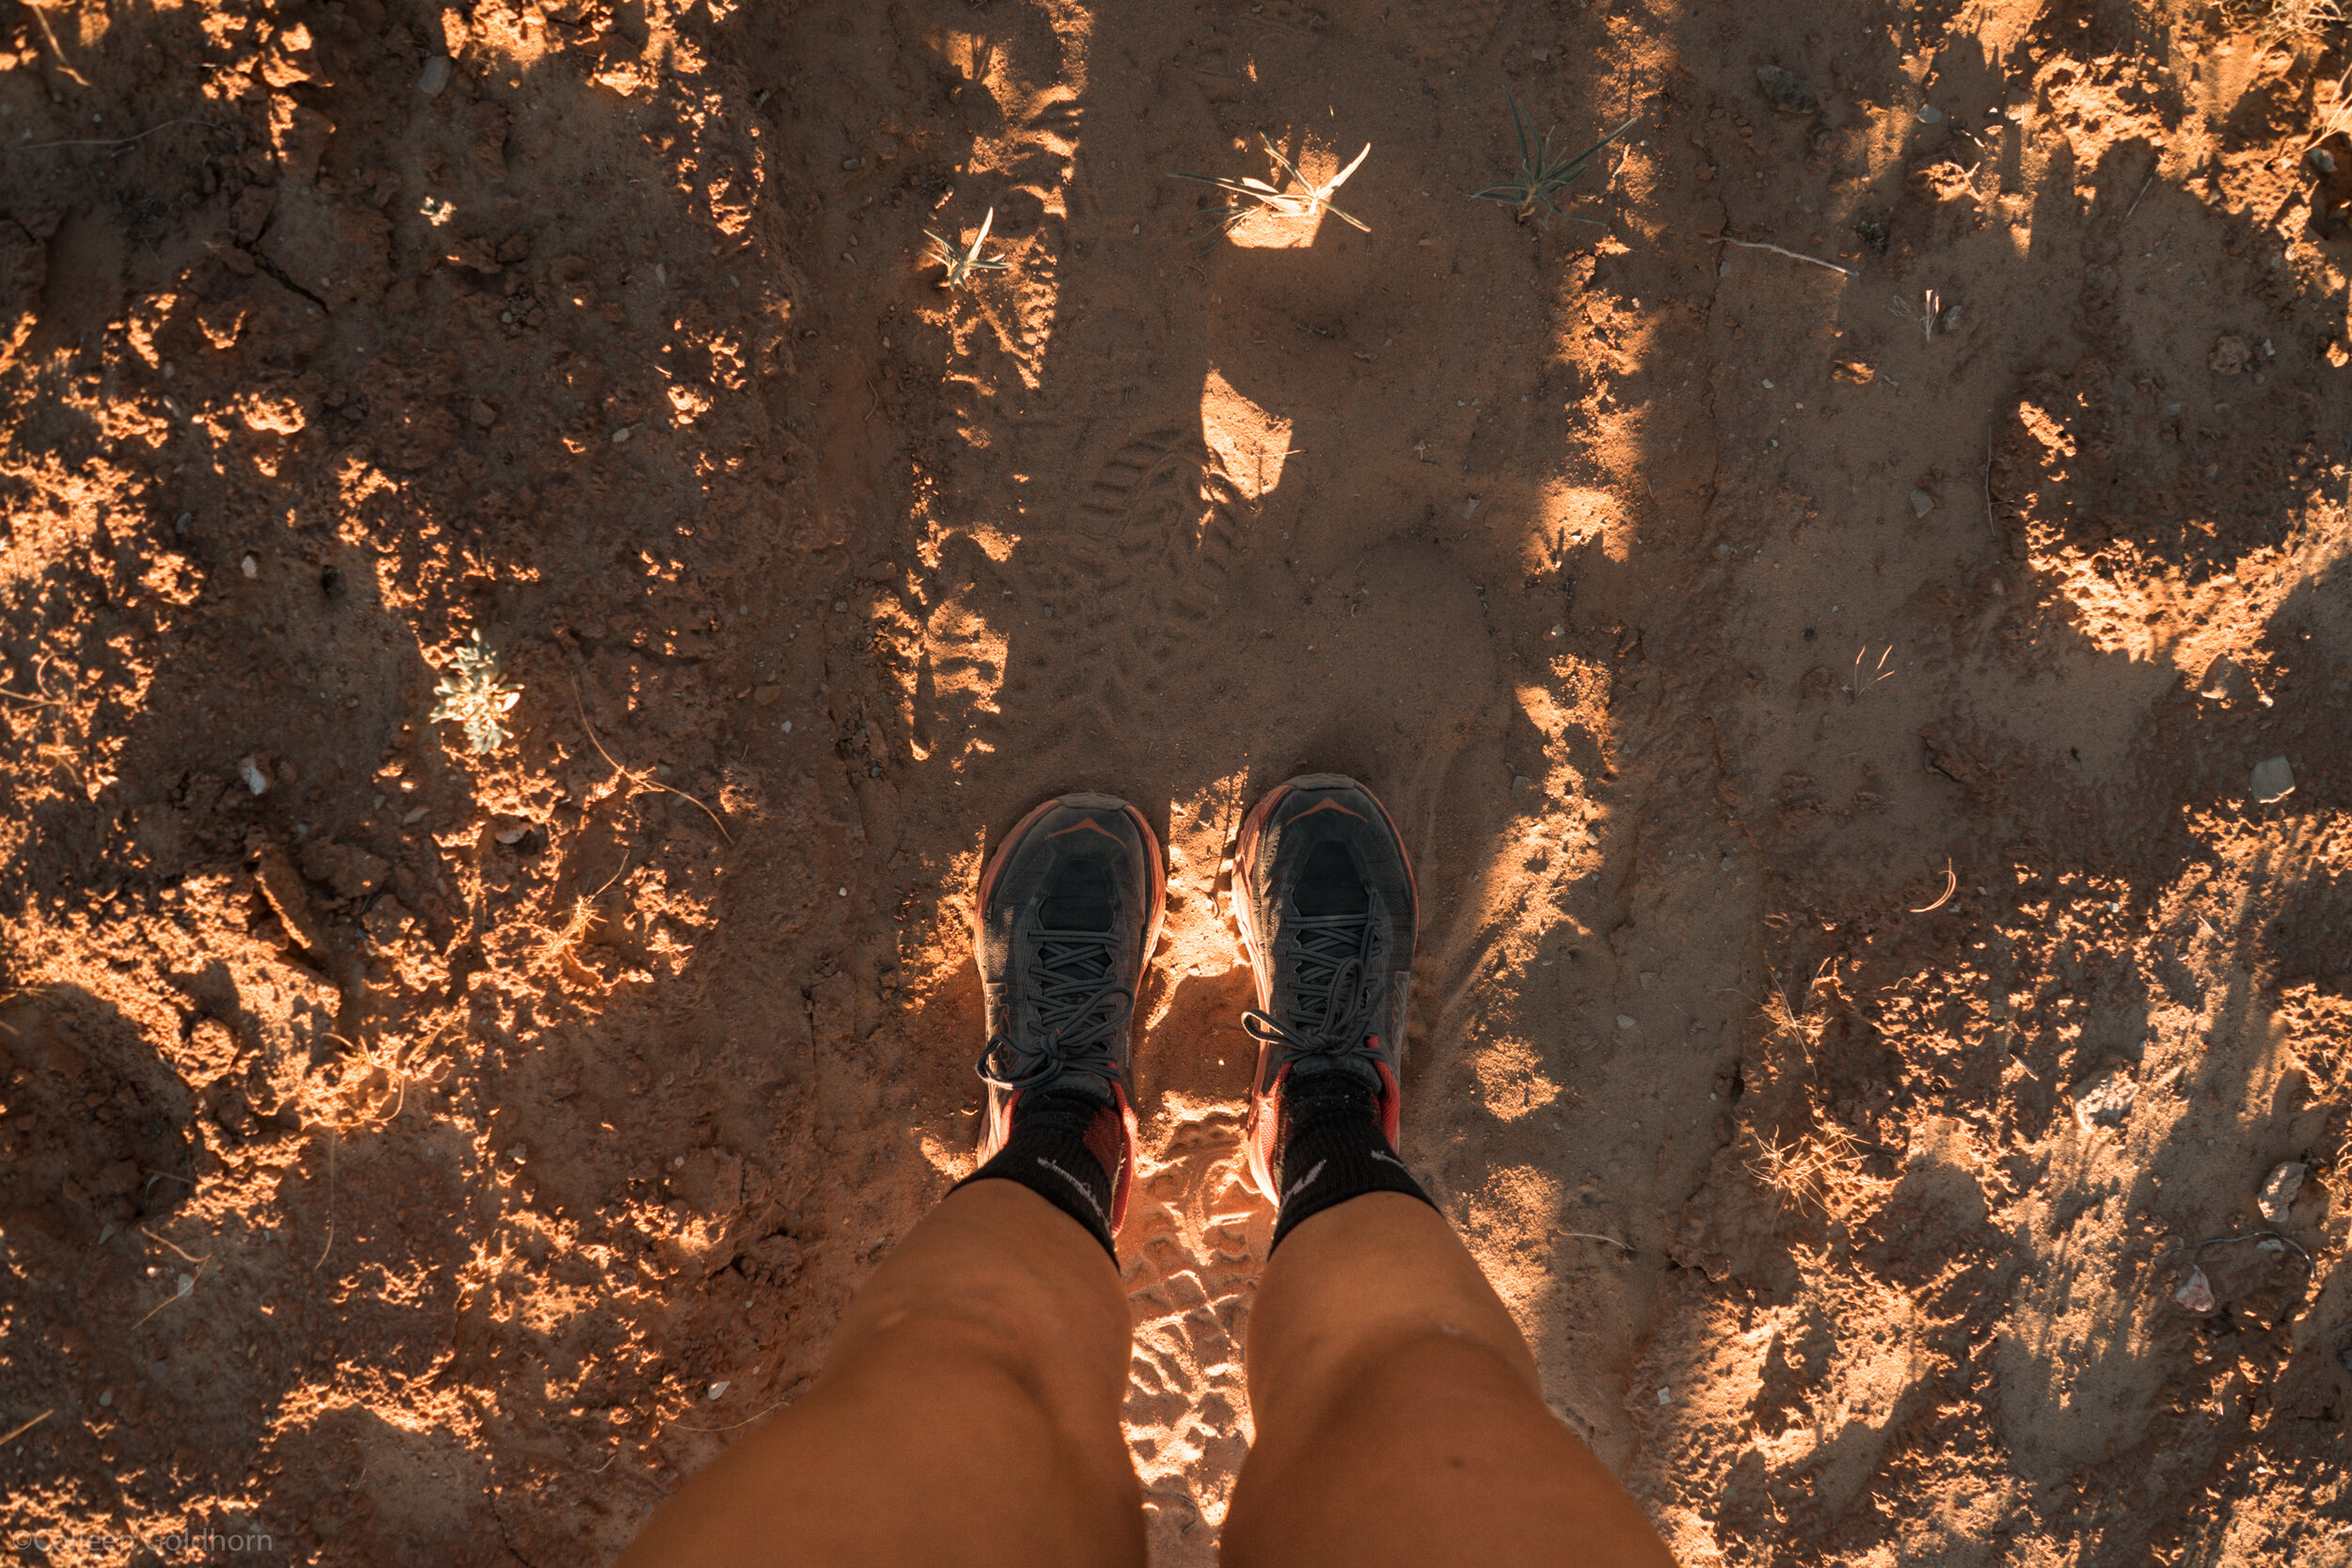 Taken during one of the multiple times we had to stop and empty sand out of our shoes…